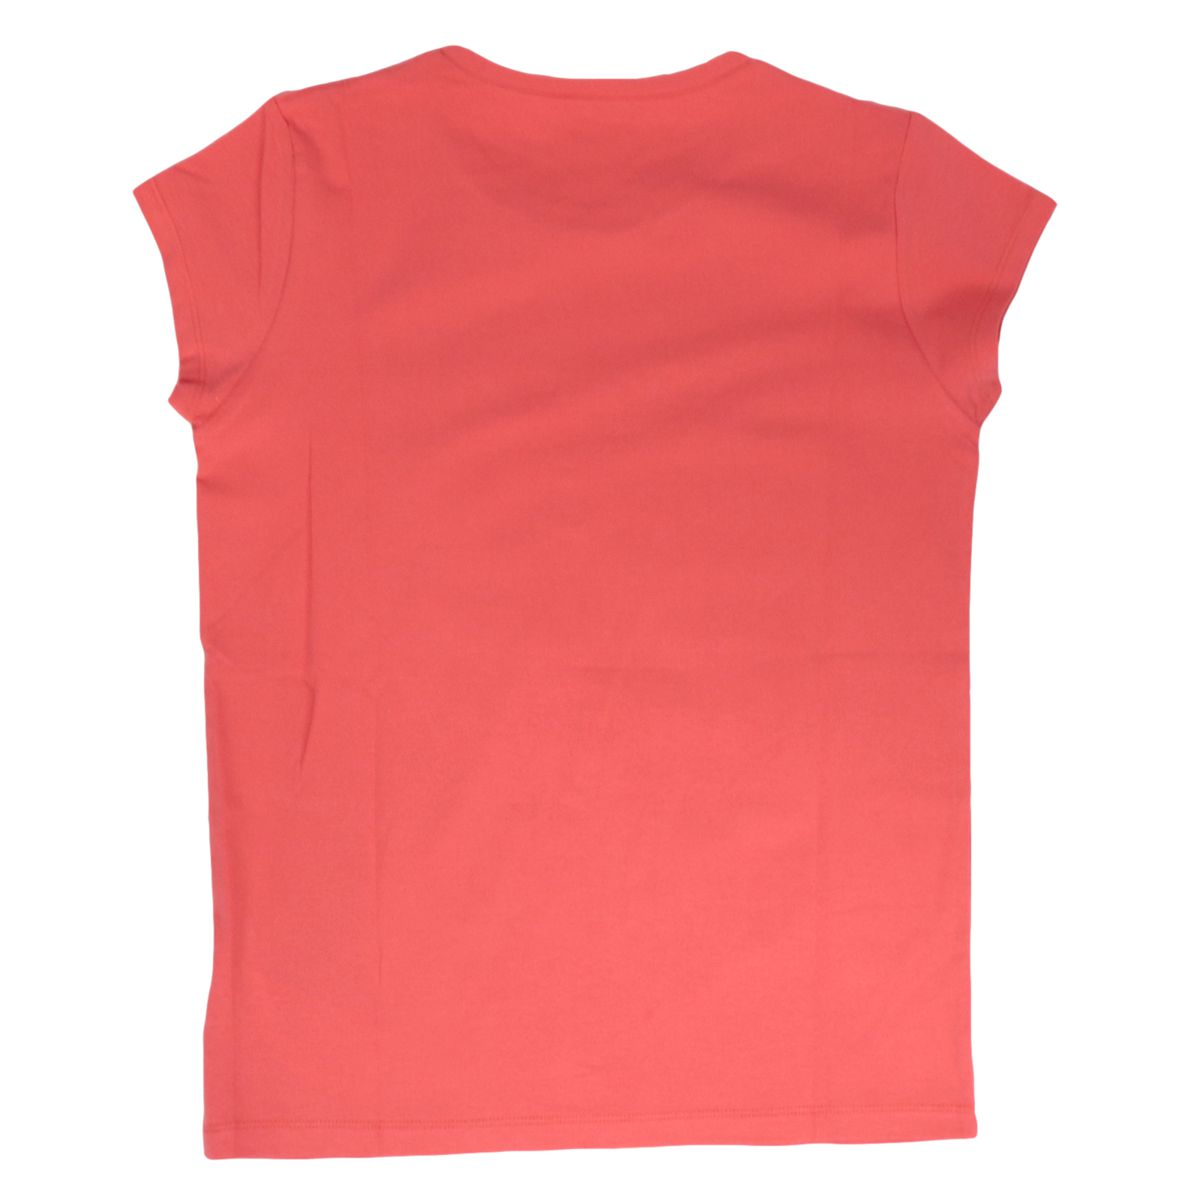 Short-sleeved T-shirt in cotton jersey with rhinestone logo. Coral Liu Jo